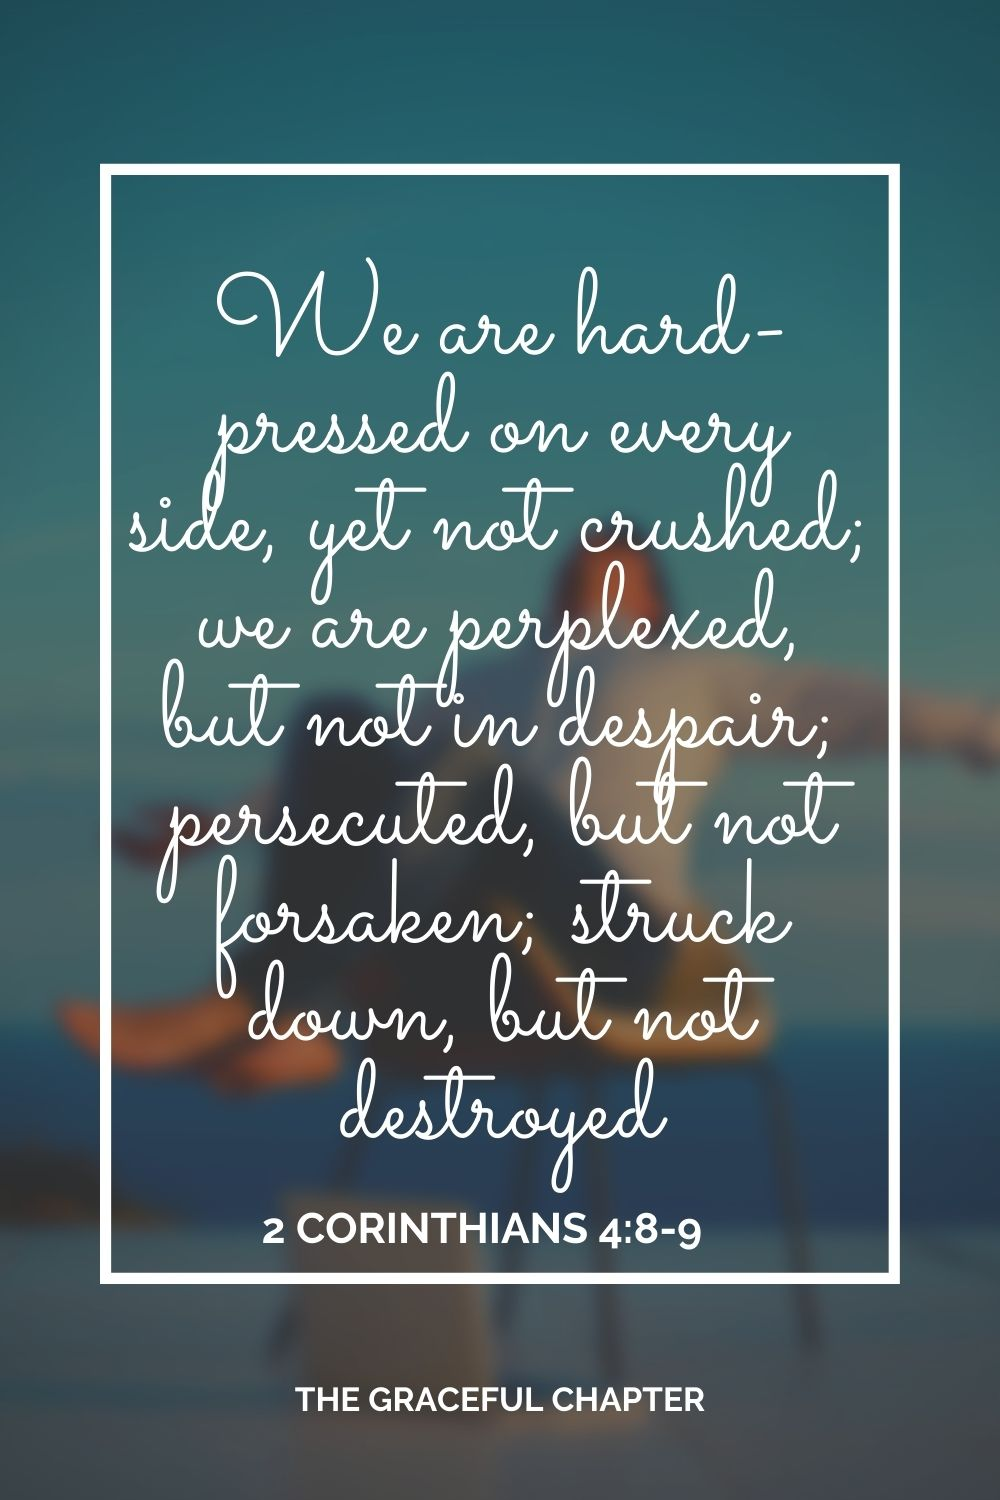 We are hard-pressed on every side, yet not crushed; we are perplexed, but not in despair; persecuted, but not forsaken; struck down, but not destroyed 2 Corinthians 4:8-9